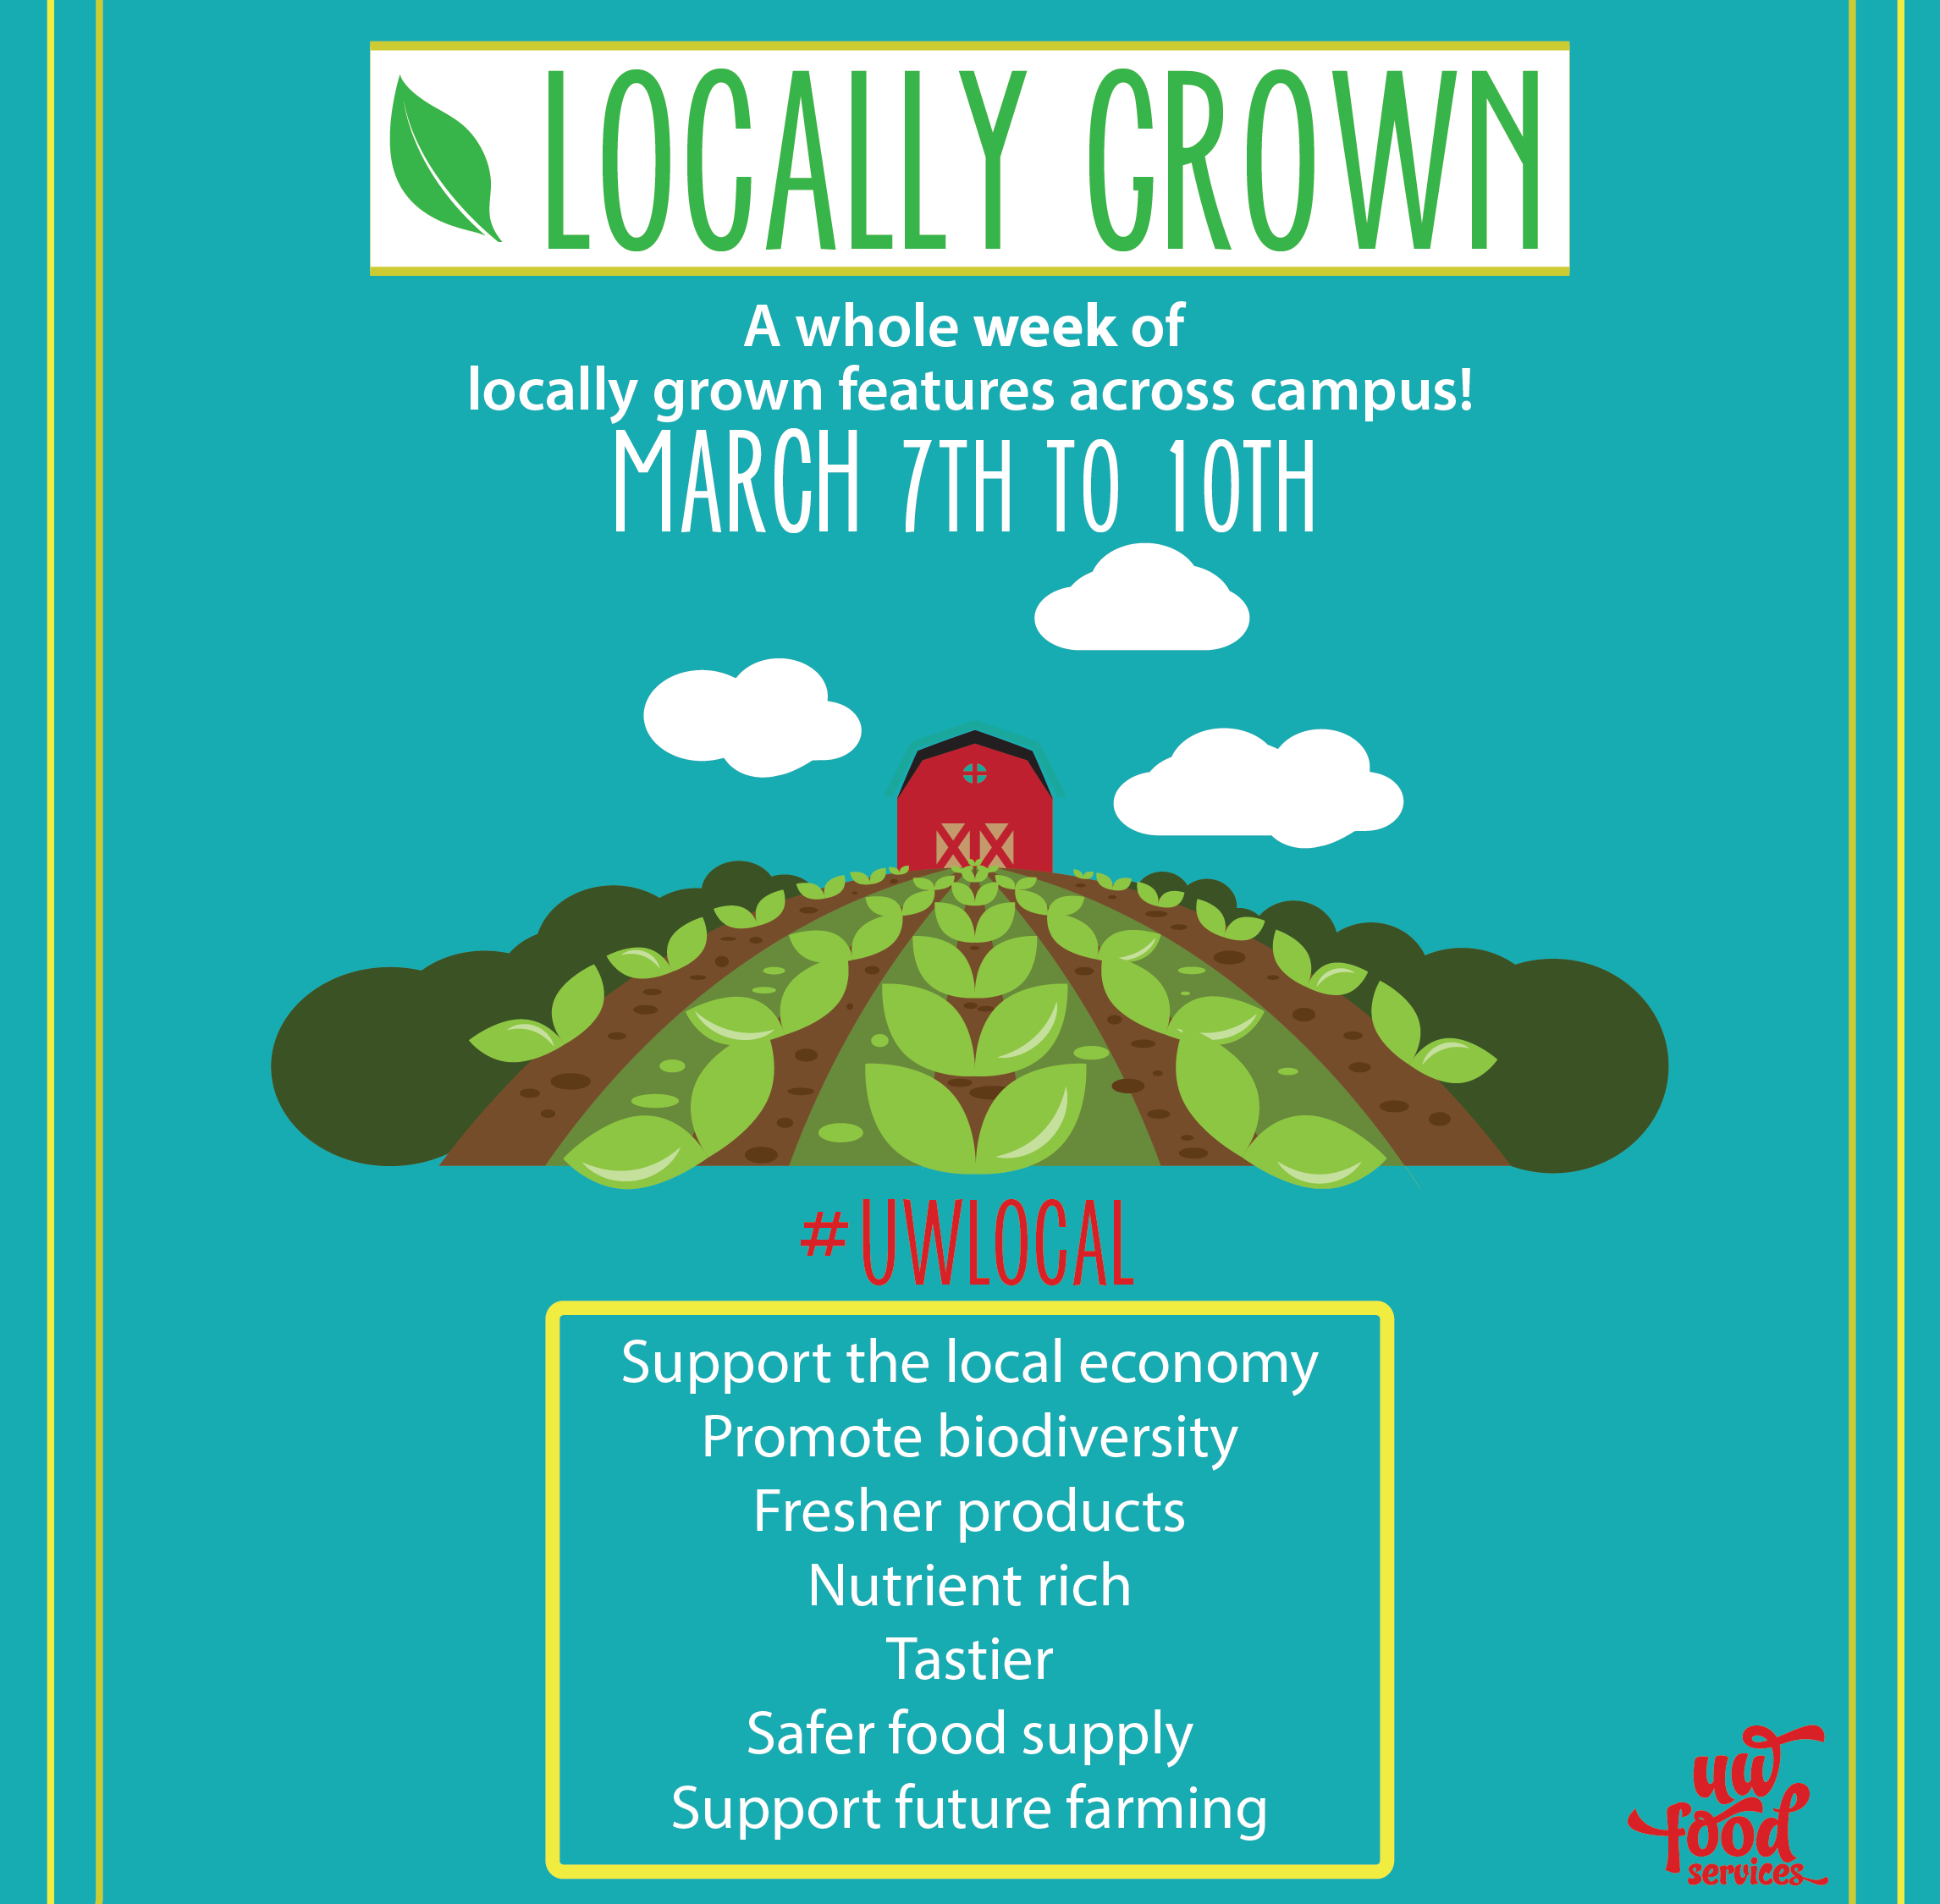 Check out our locally grown features across campus this week at UW Food Services locations